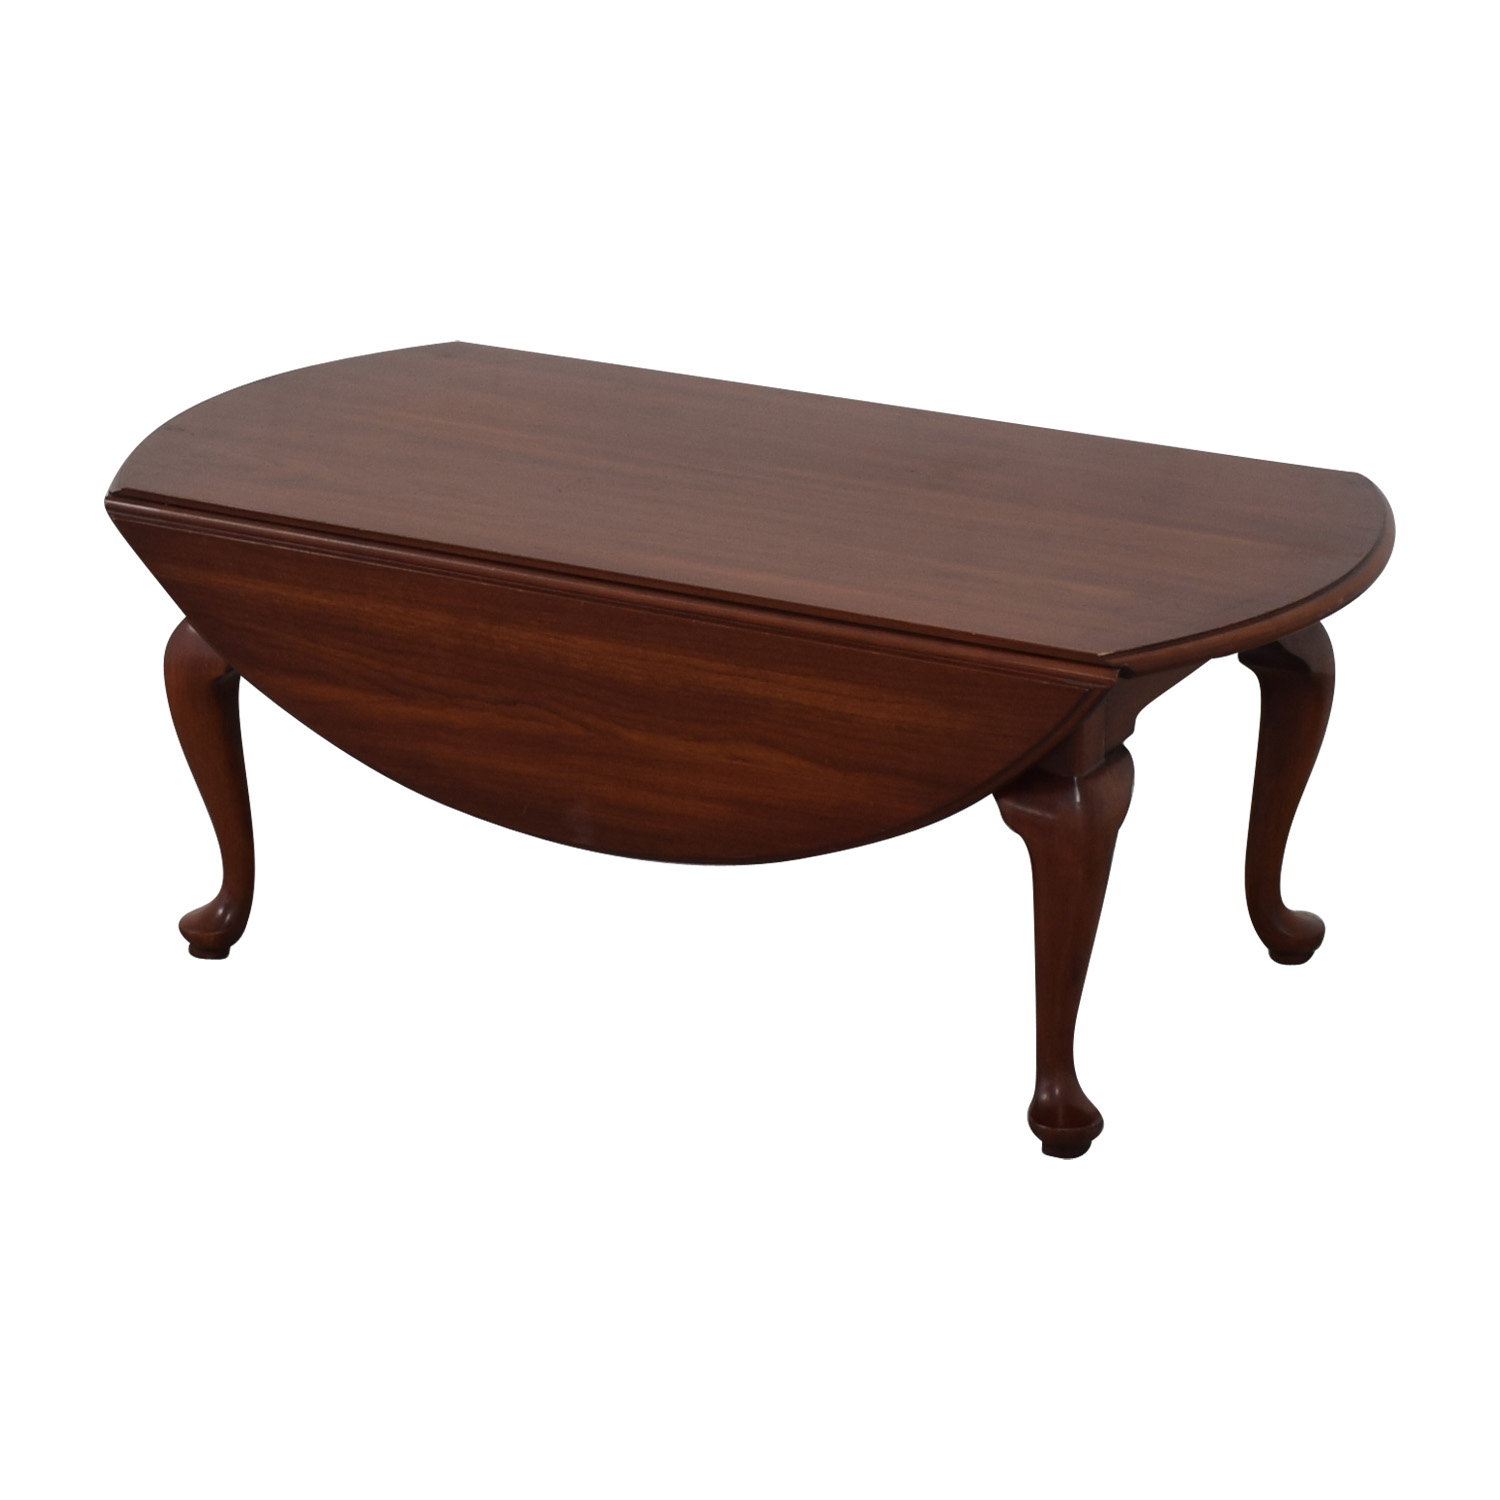 Queen Ann Sidetable.79 Off Henkel Harris Henkel Harris Drop Leaf Queen Anne Coffee Table Tables